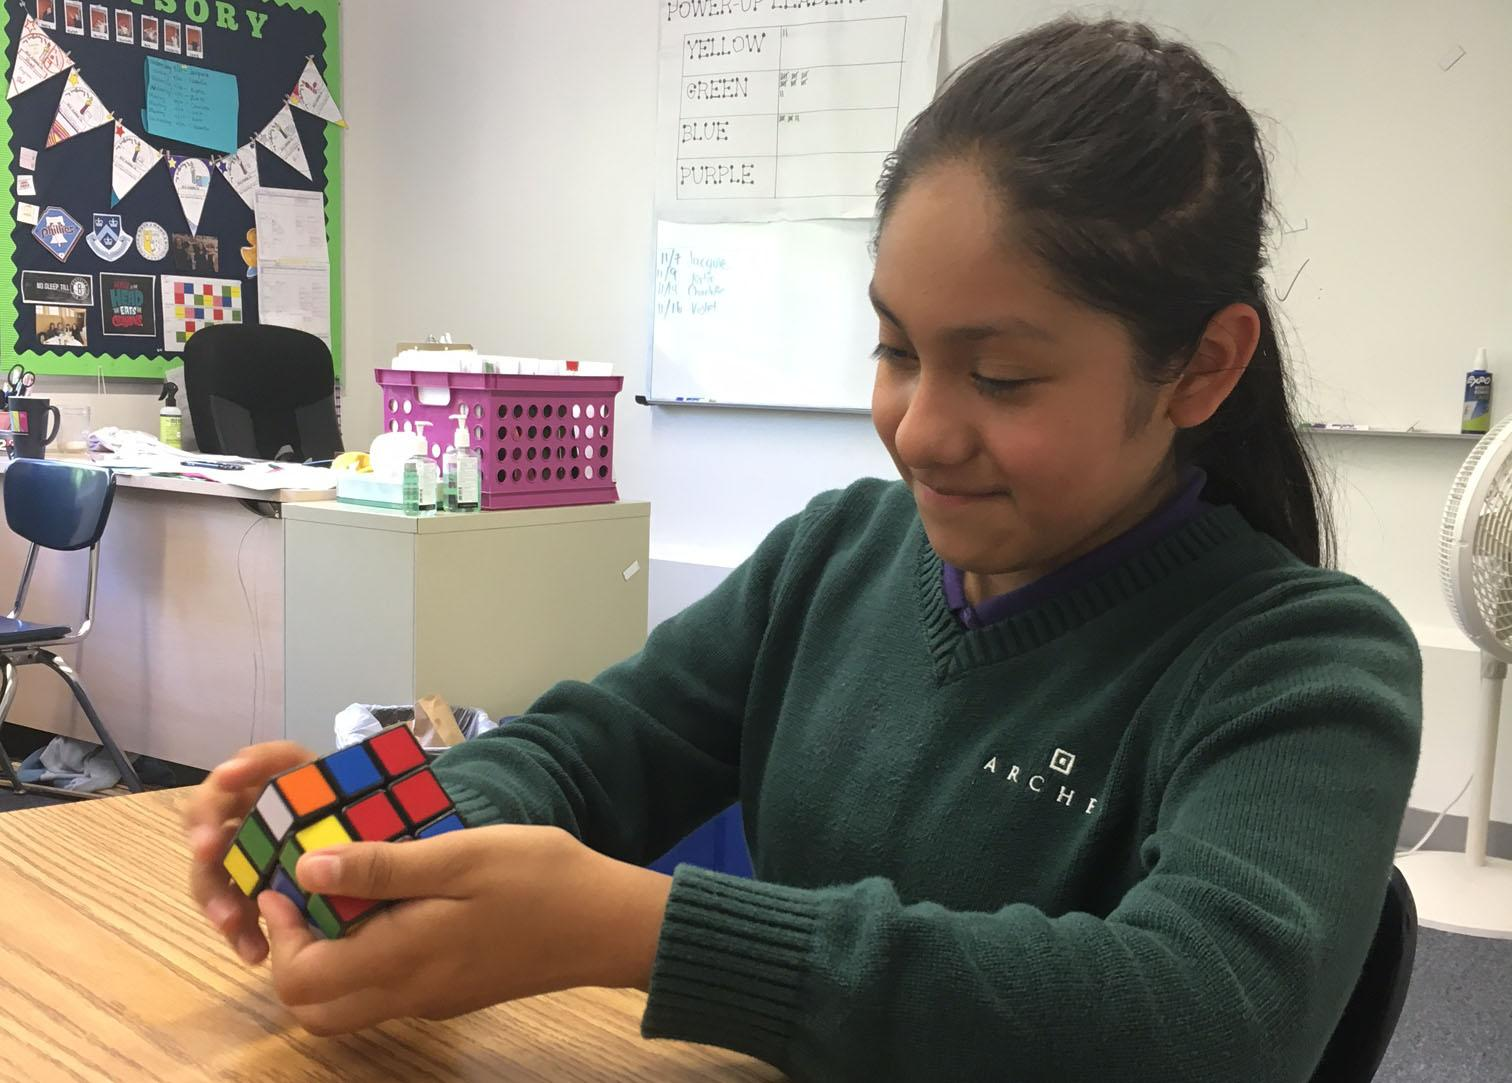 Karen Garcia '23 solves a Rubik's Cube at the team's first meeting. The team completed a simple practice mosaic after brainstorming design ideas.